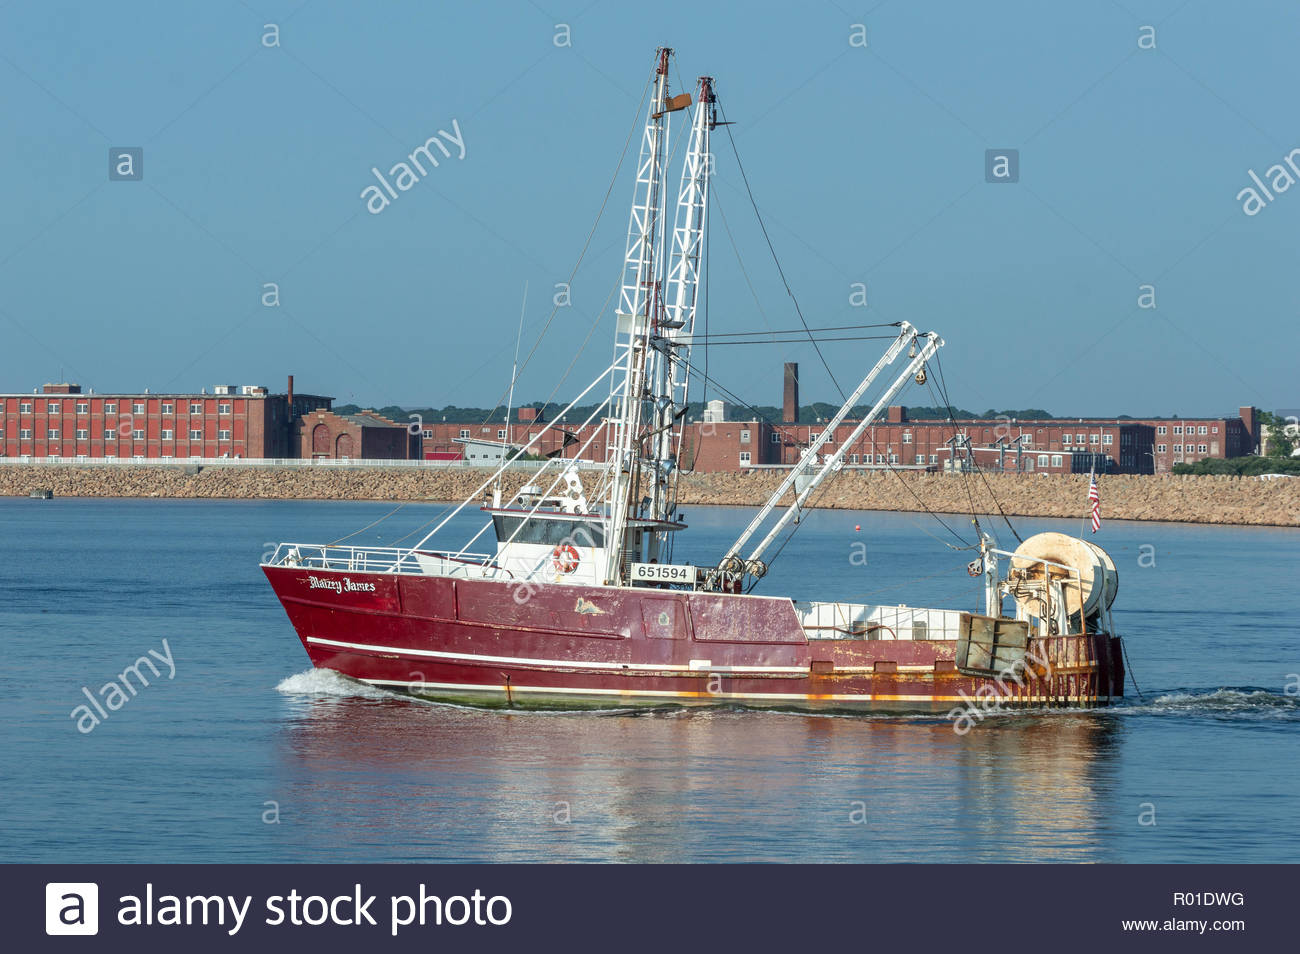 New Bedford Stock Photos & New Bedford Stock Images - Alamy